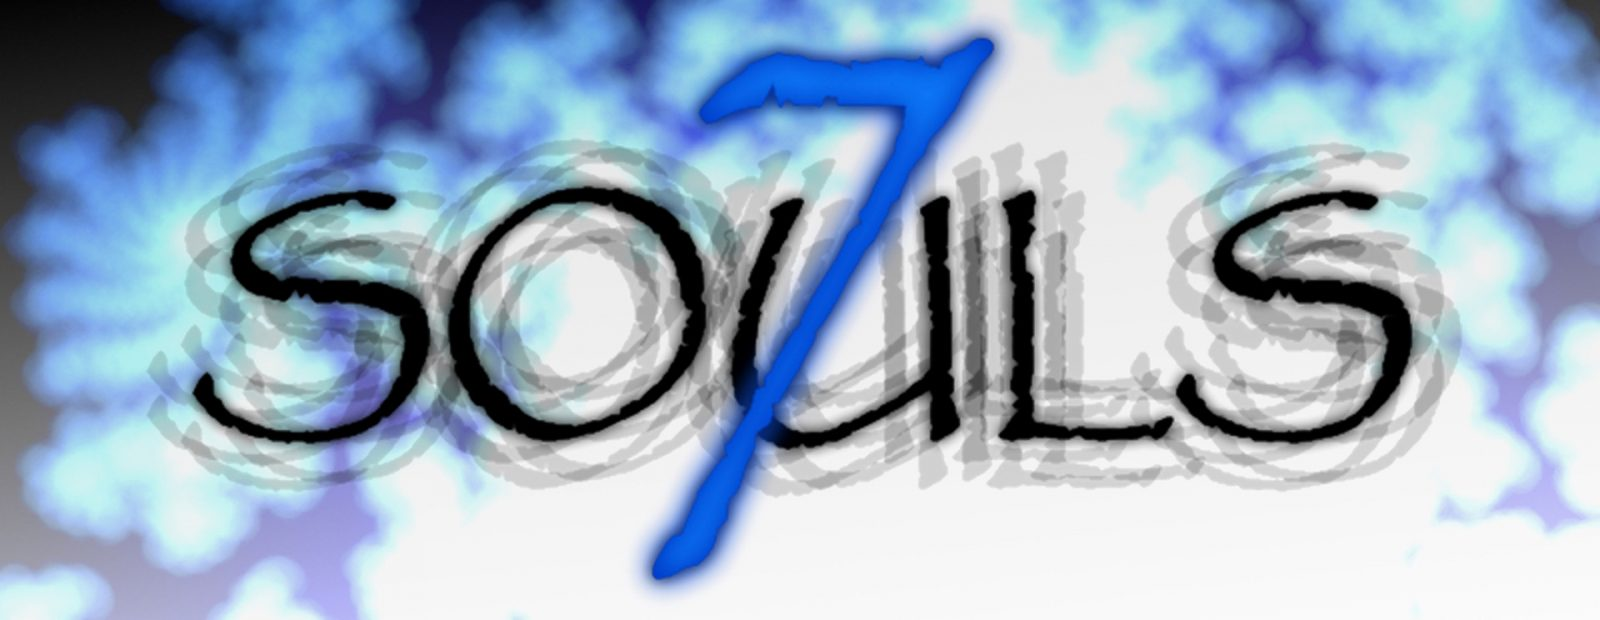 cropped-banner_small-6.jpg